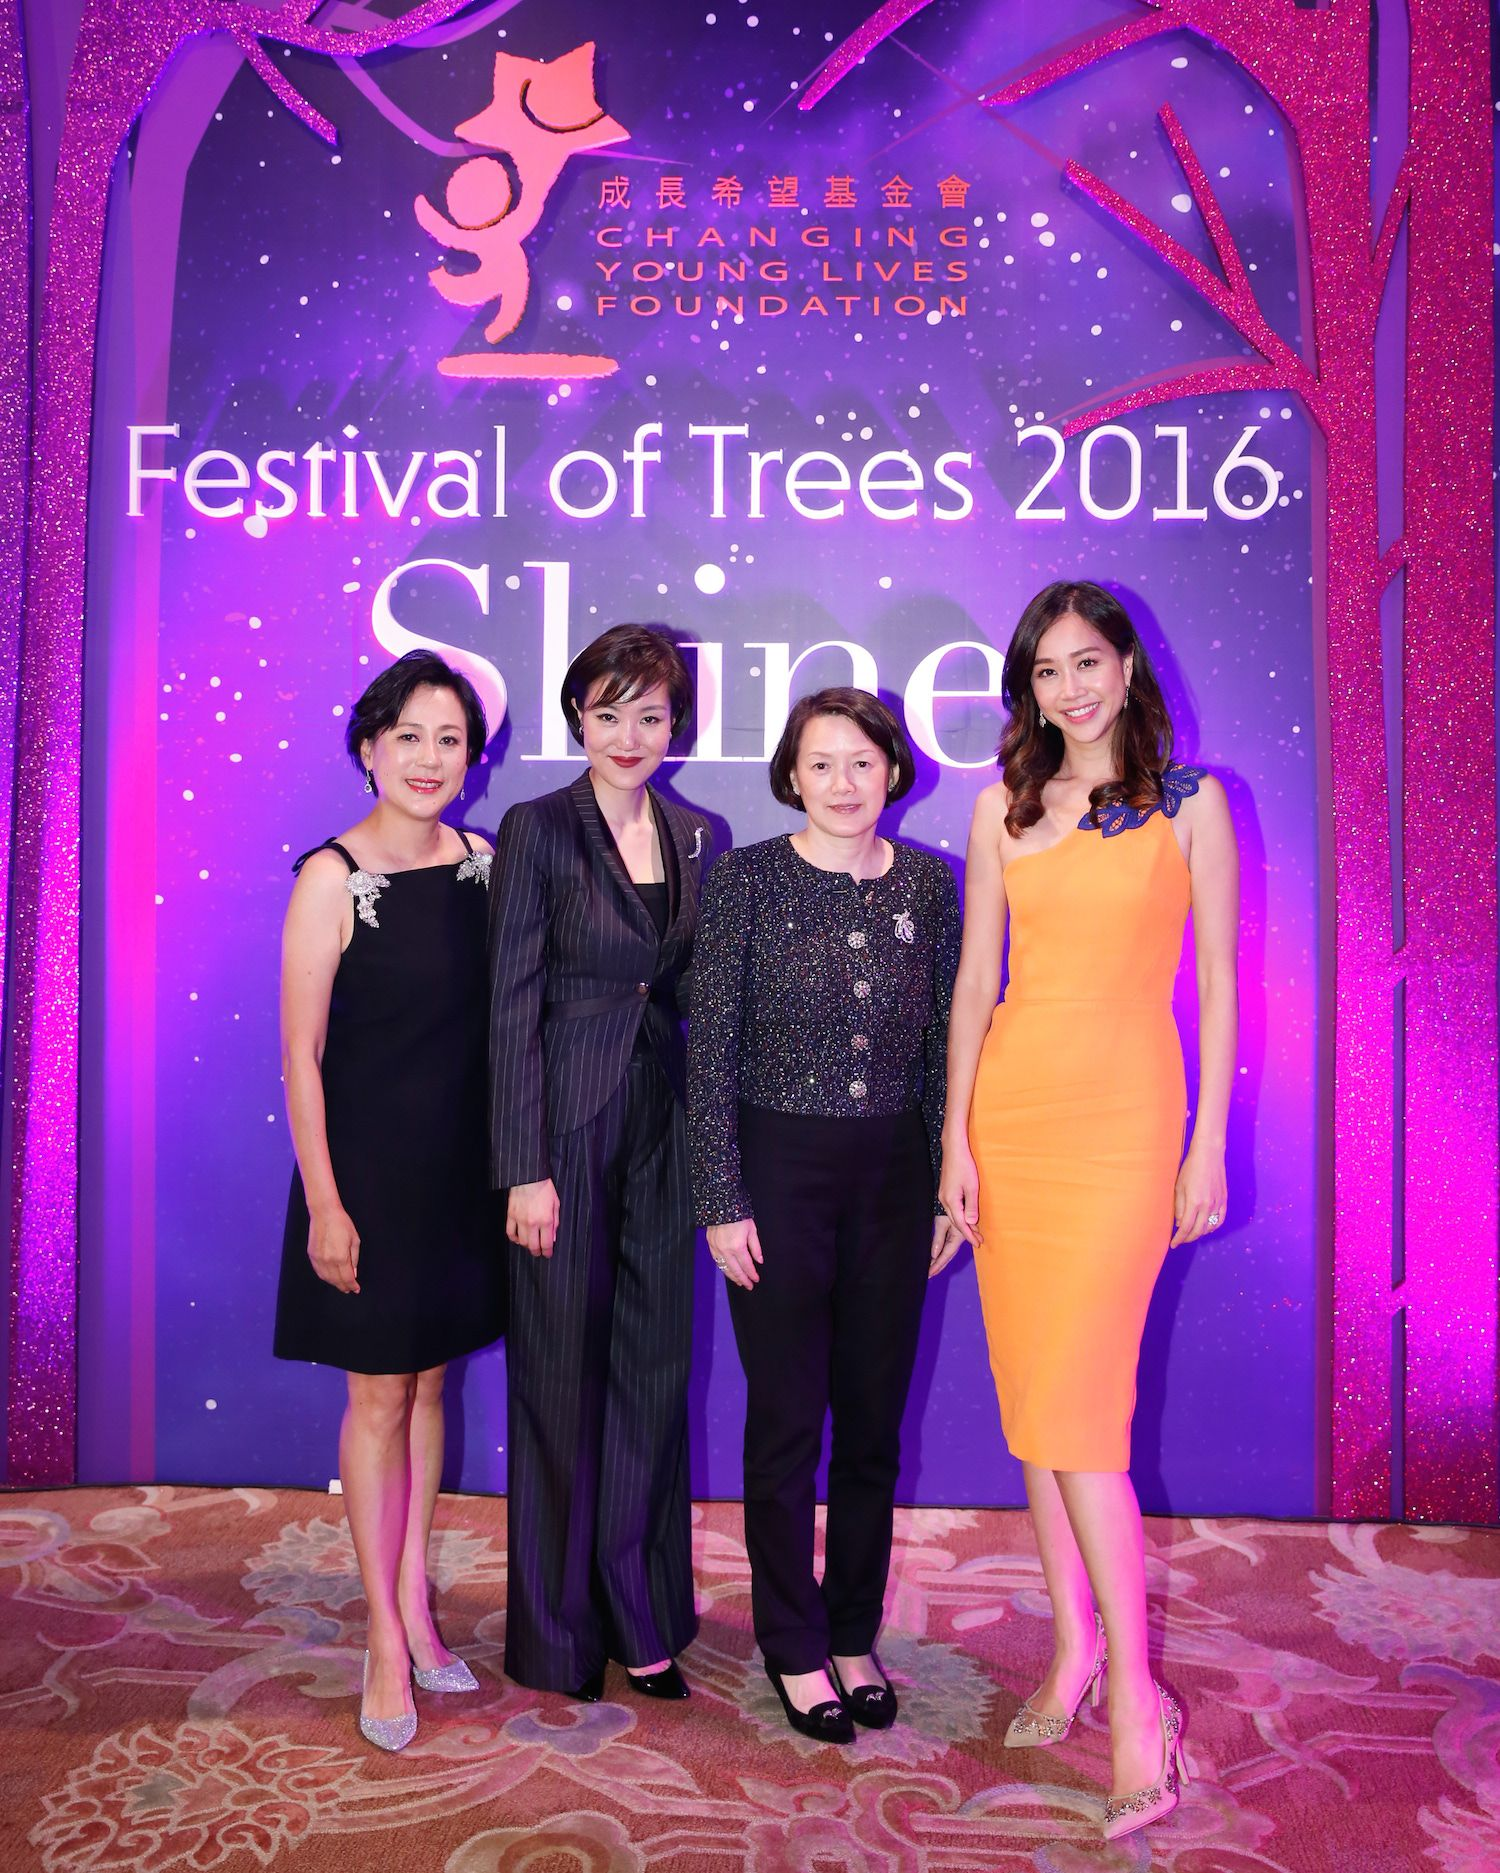 Yvette Ho, Jane Chao-Lee, Sheilah Chatjaval and Angie Ting